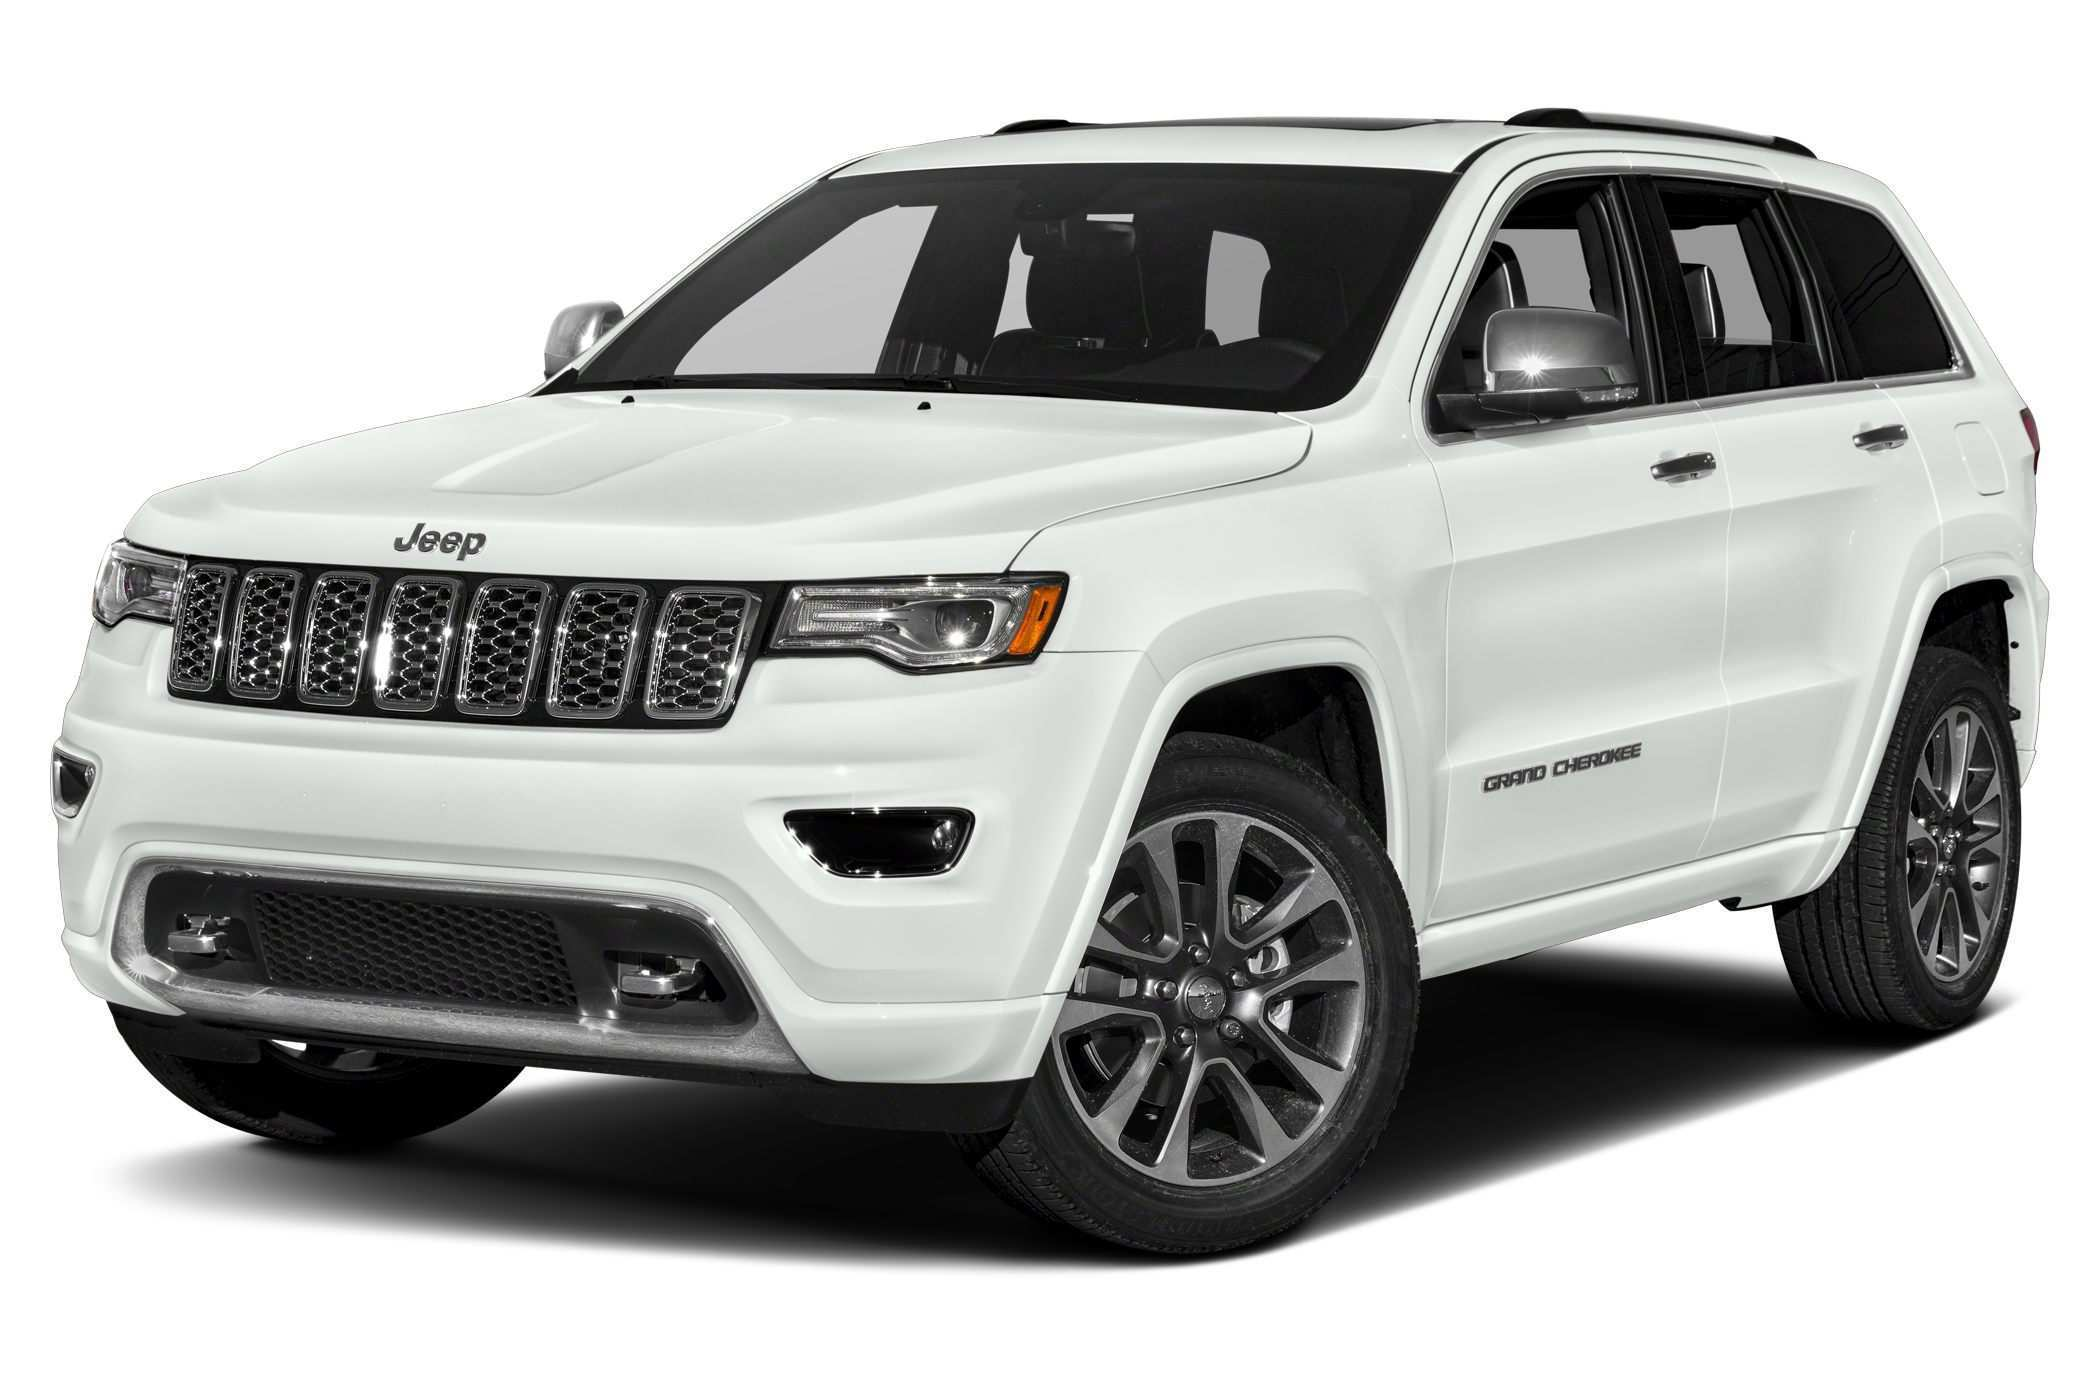 98 Best Review Jeep Cherokee 2019 Video Interior Exterior And Review Images by Jeep Cherokee 2019 Video Interior Exterior And Review